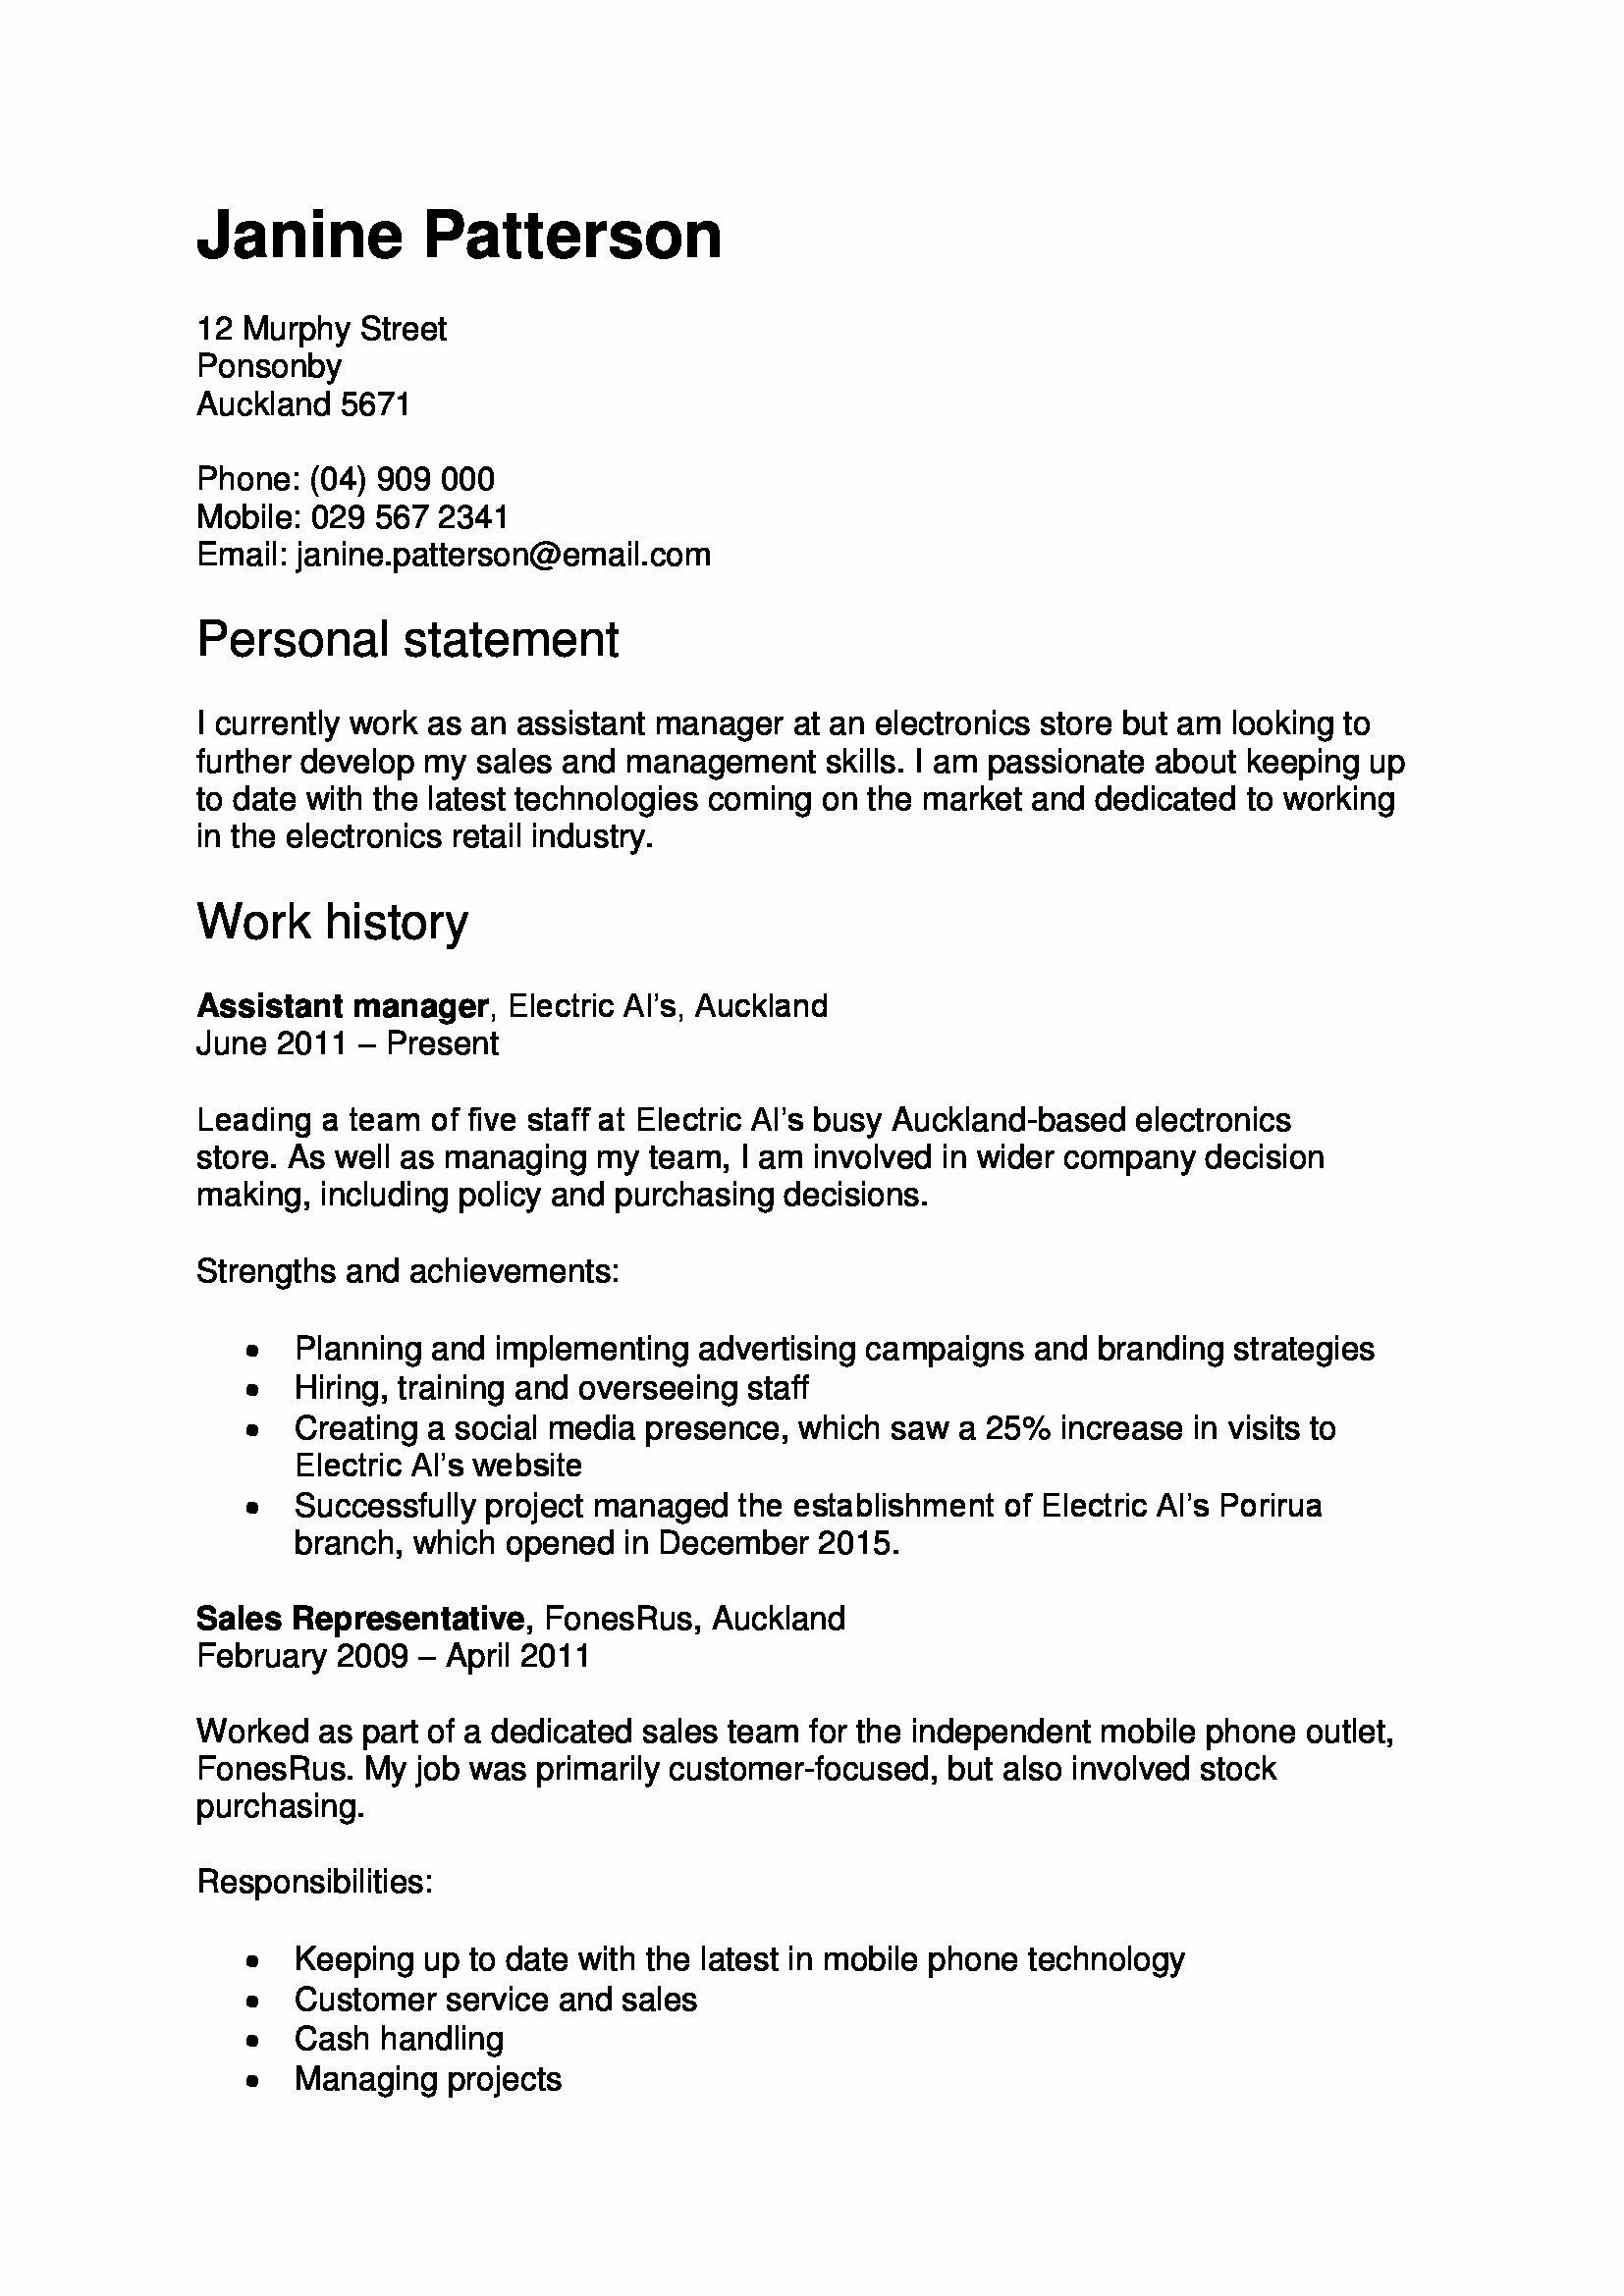 What to Put for Skills On Resume - It Skills Resume Elegant Elegant Skills for A Resume Fishing Resume